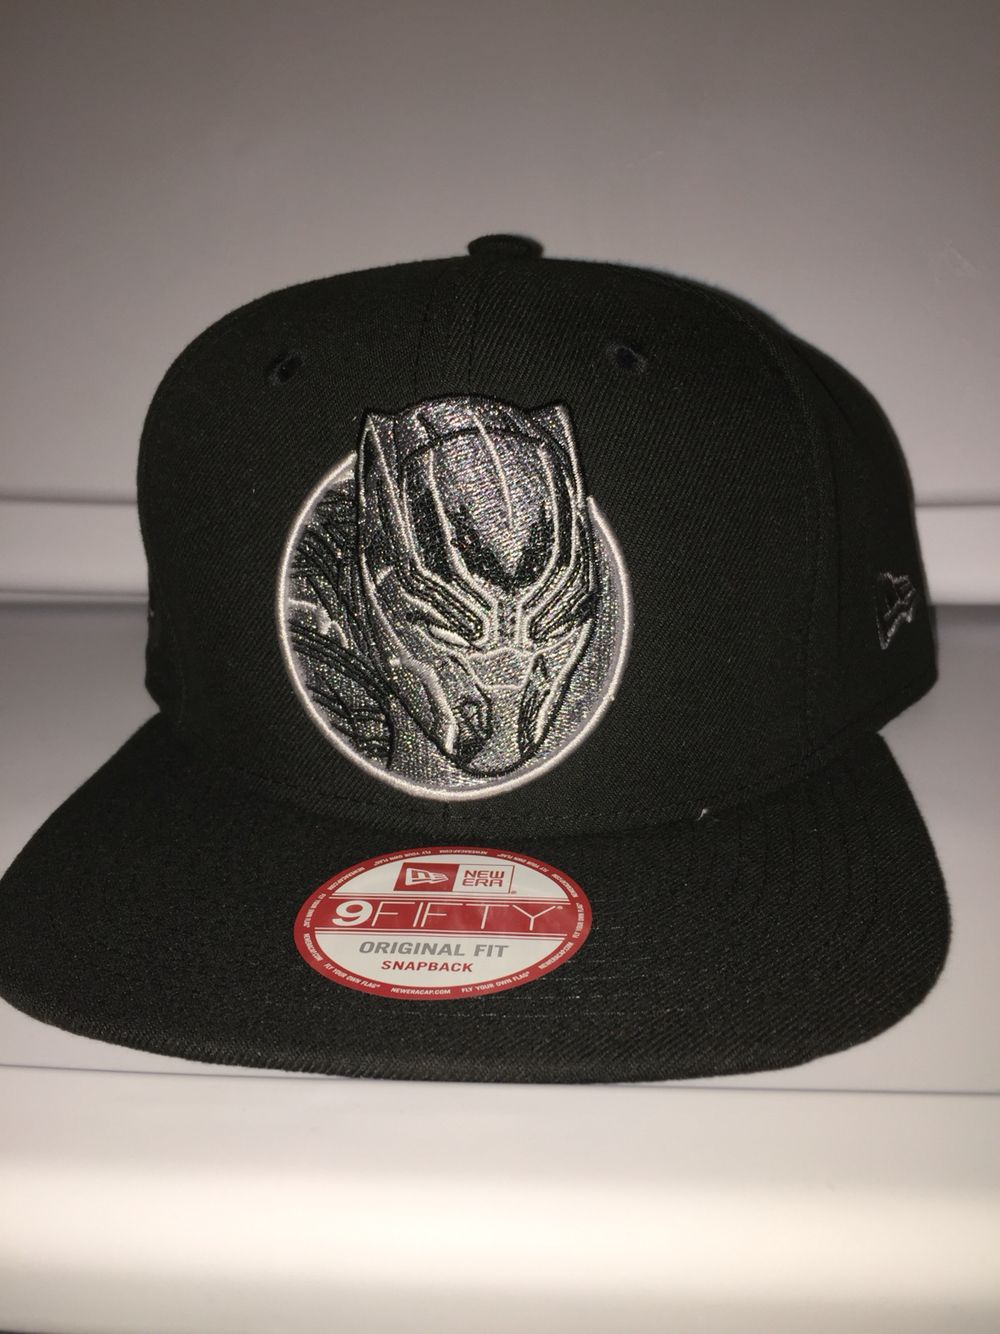 New era marvel black panther snapback with black panther head on the side 37f9abec350